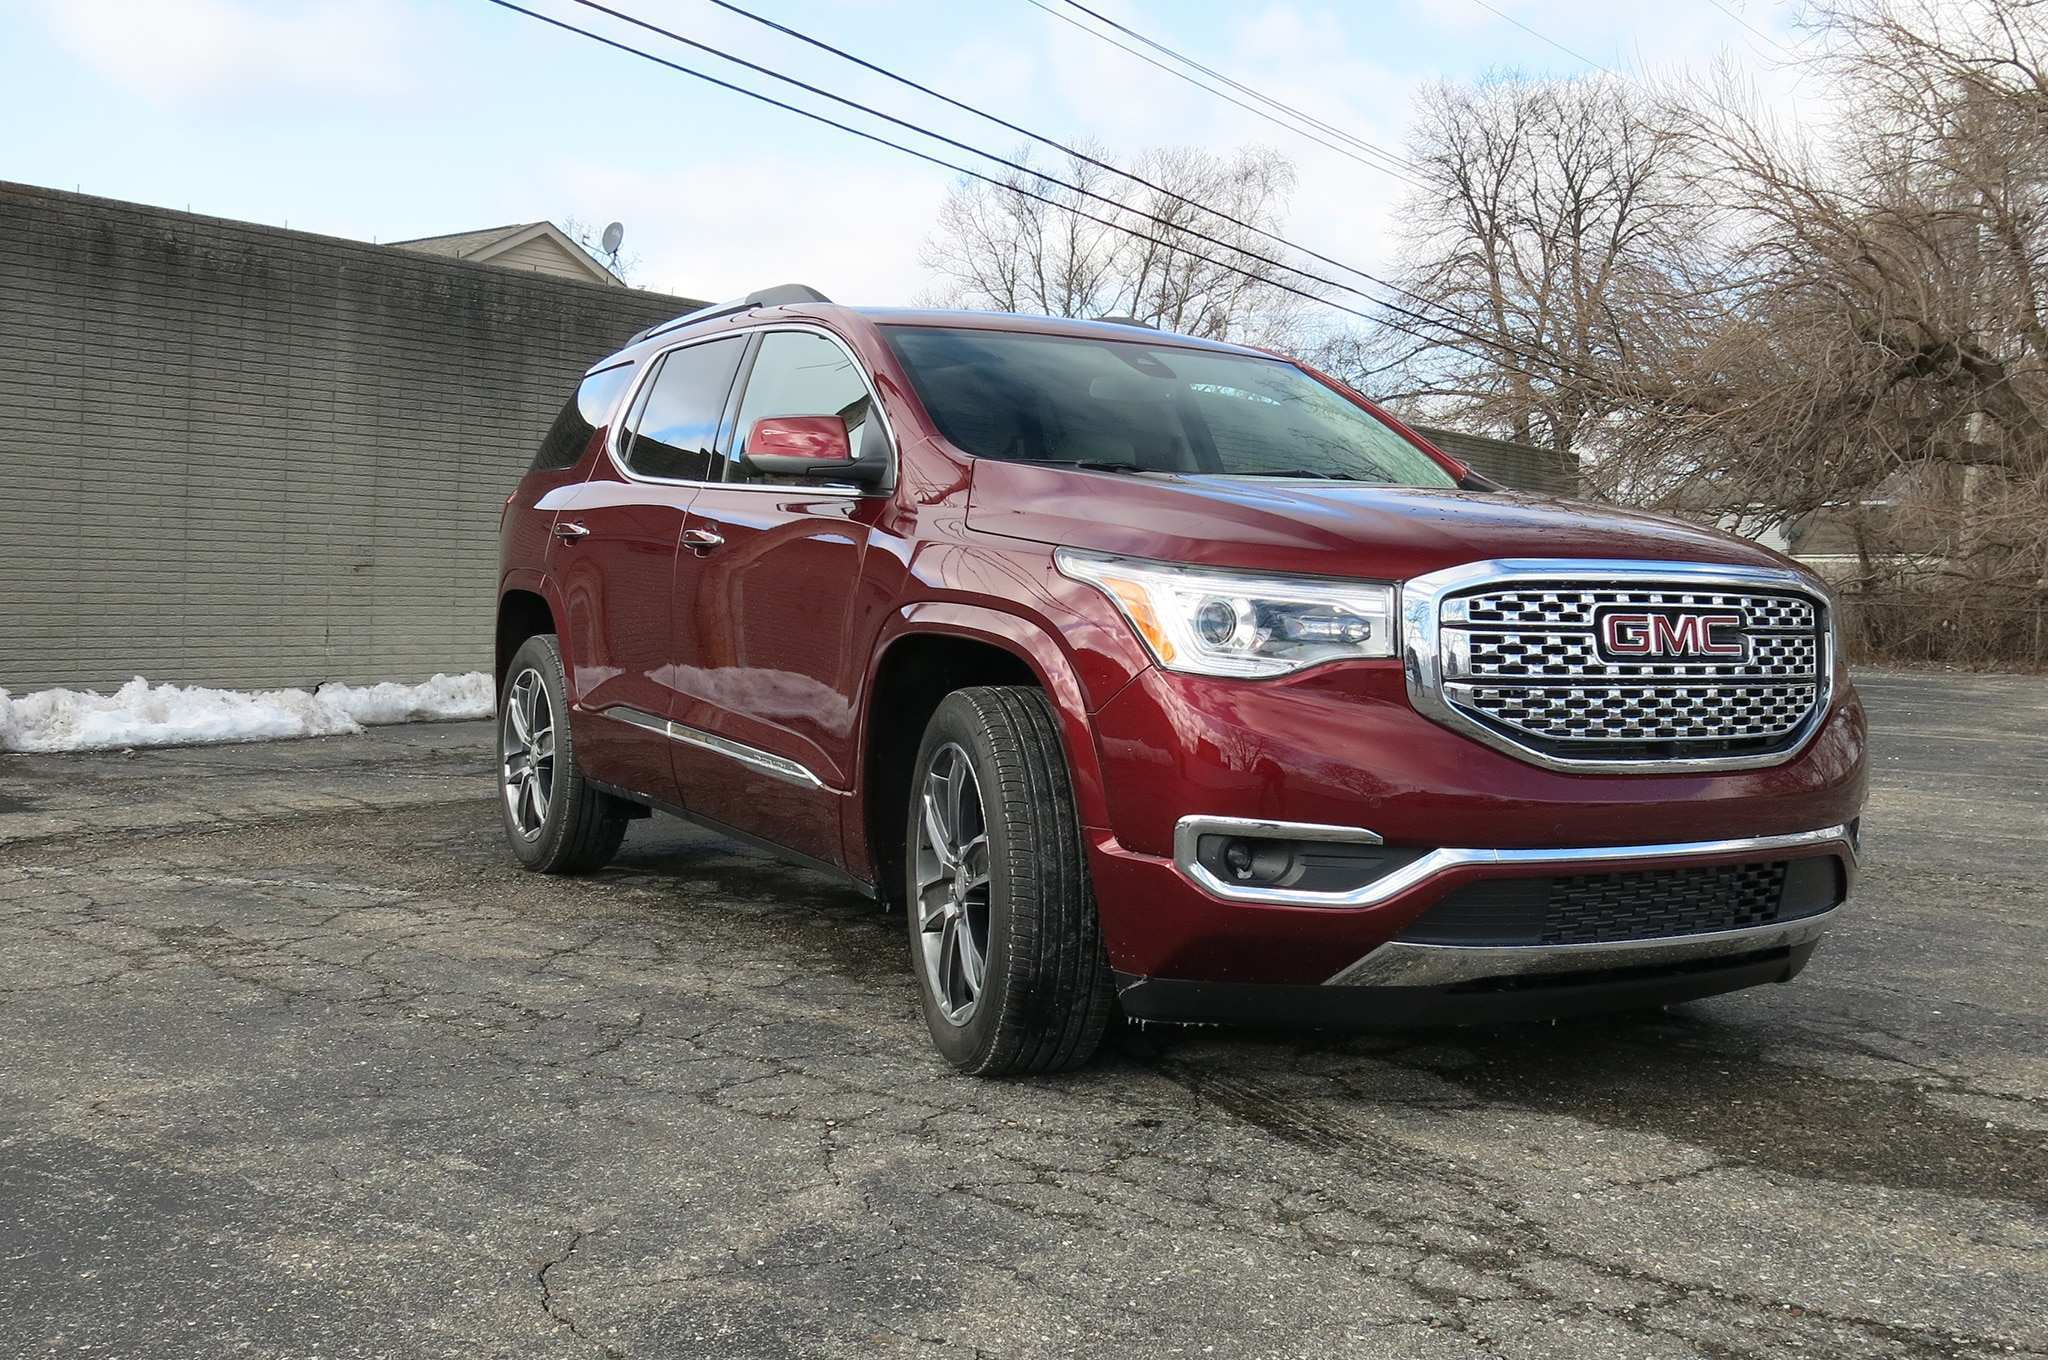 92 The 2019 Gmc Acadia 9 Speed Transmission Redesign for 2019 Gmc Acadia 9 Speed Transmission